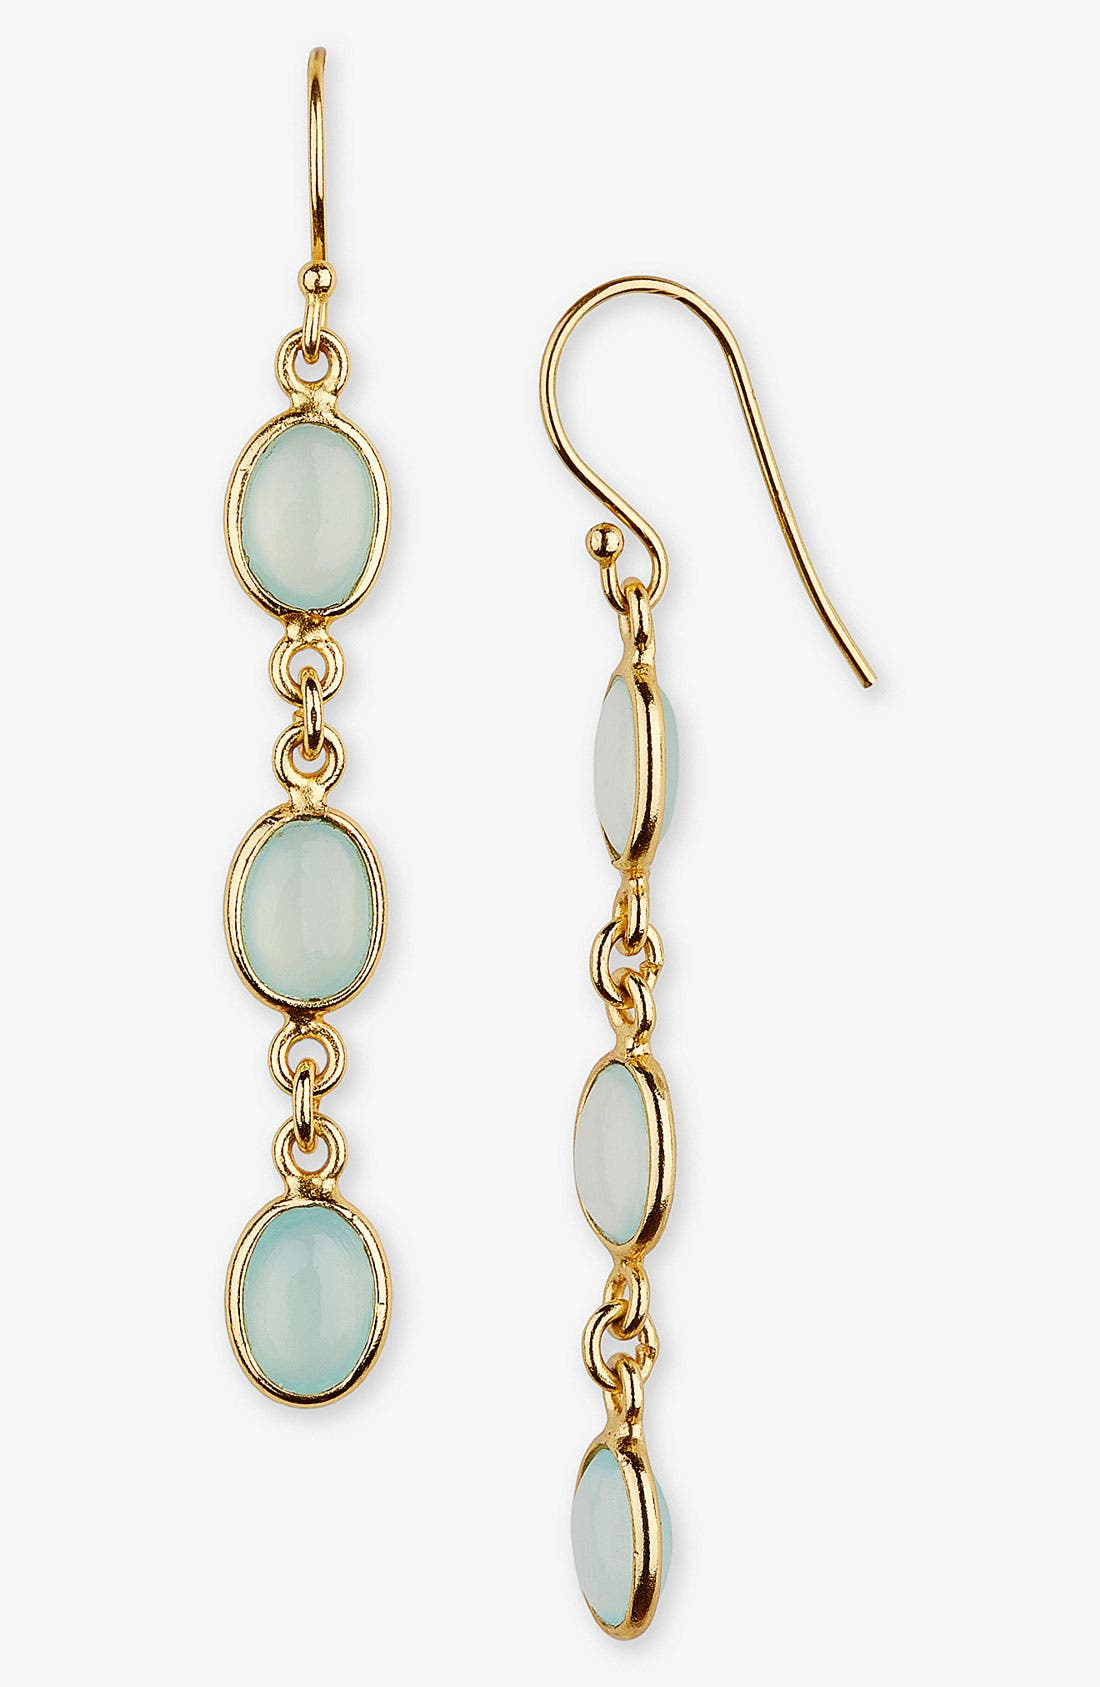 Alternate Image 1 Selected - Argento Vivo Stone Linear Earrings (Nordstrom Exclusive)